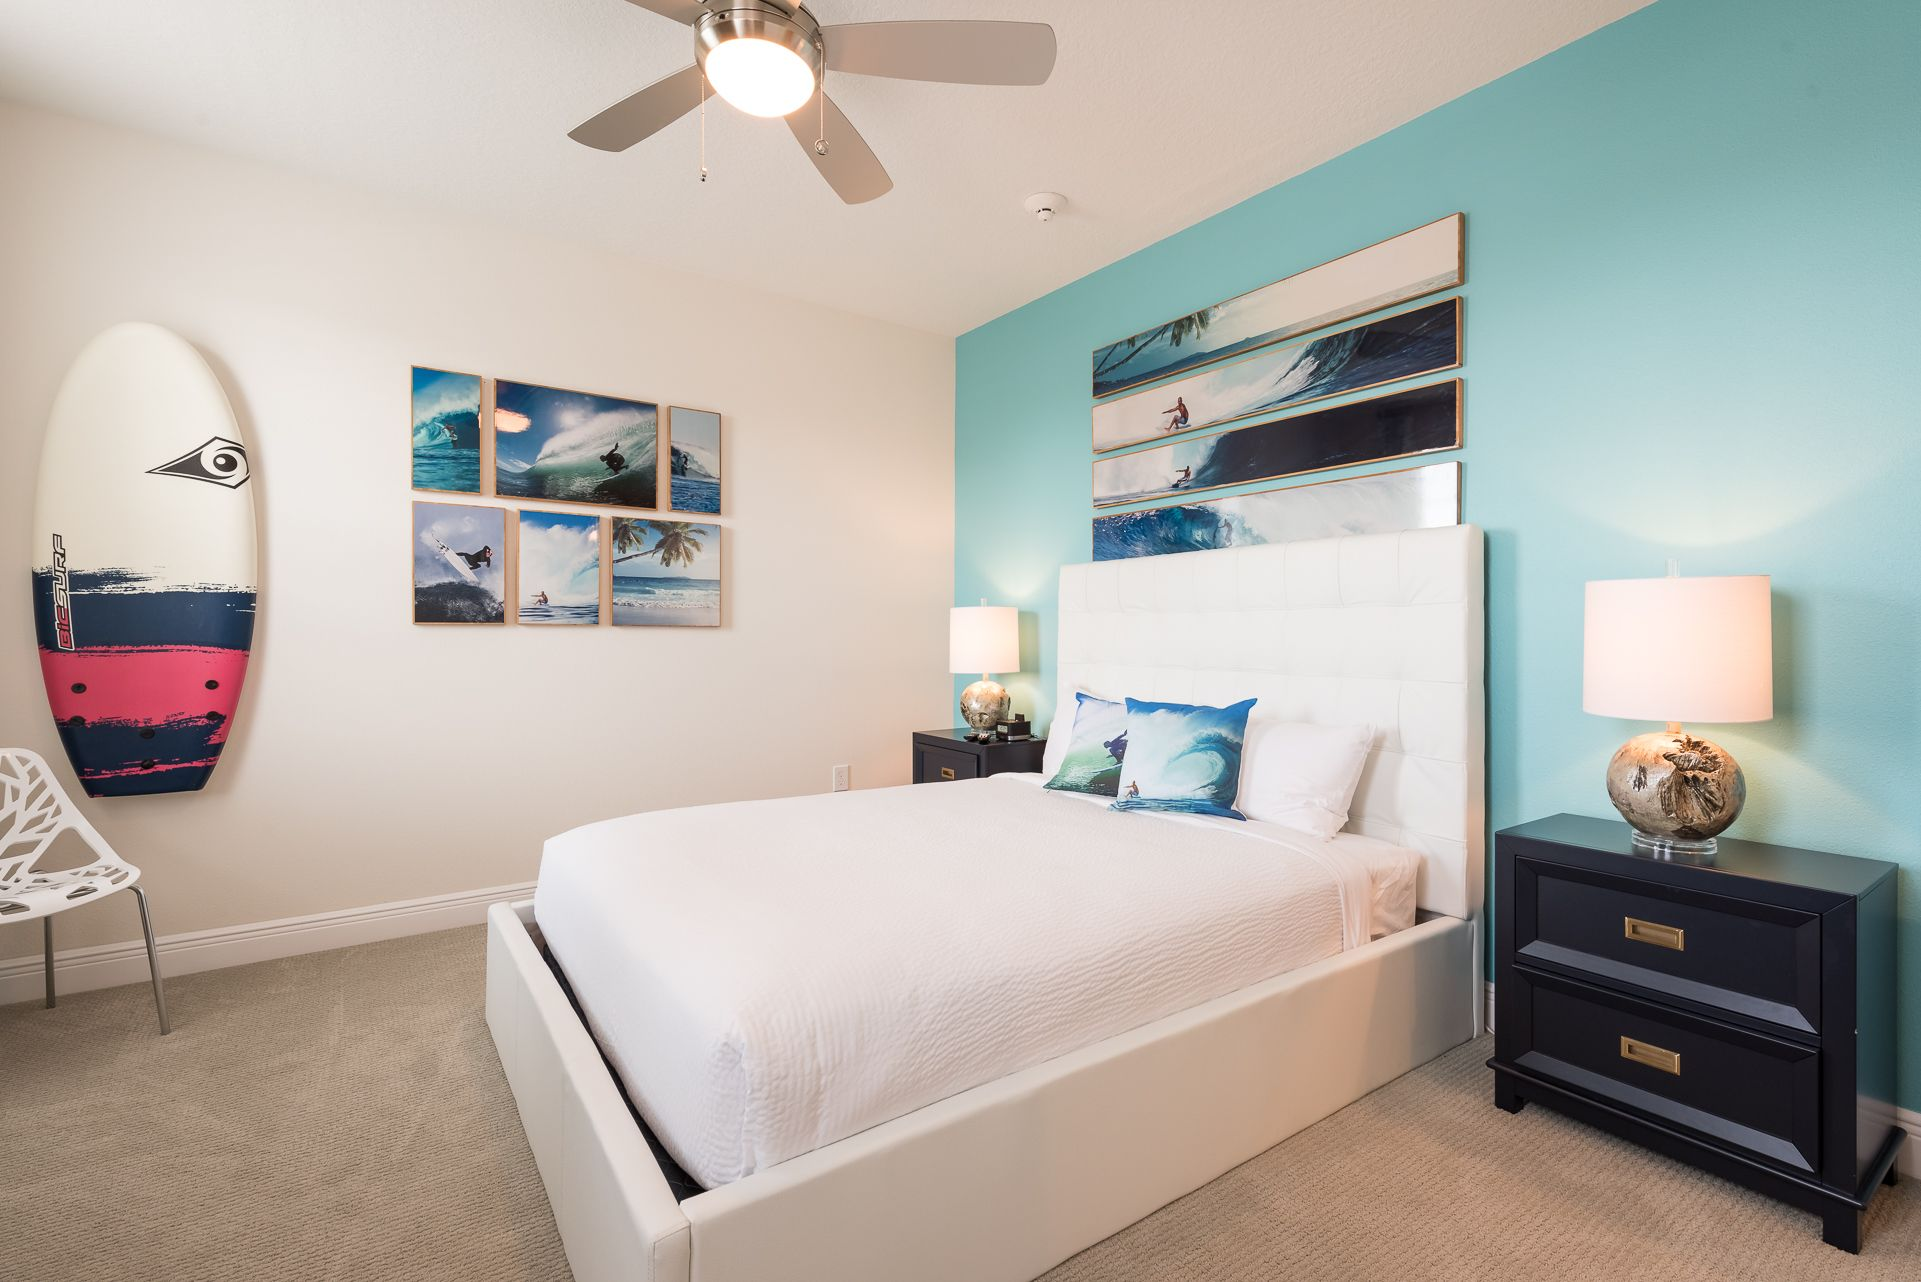 What do you think of this accent wall in this vacation